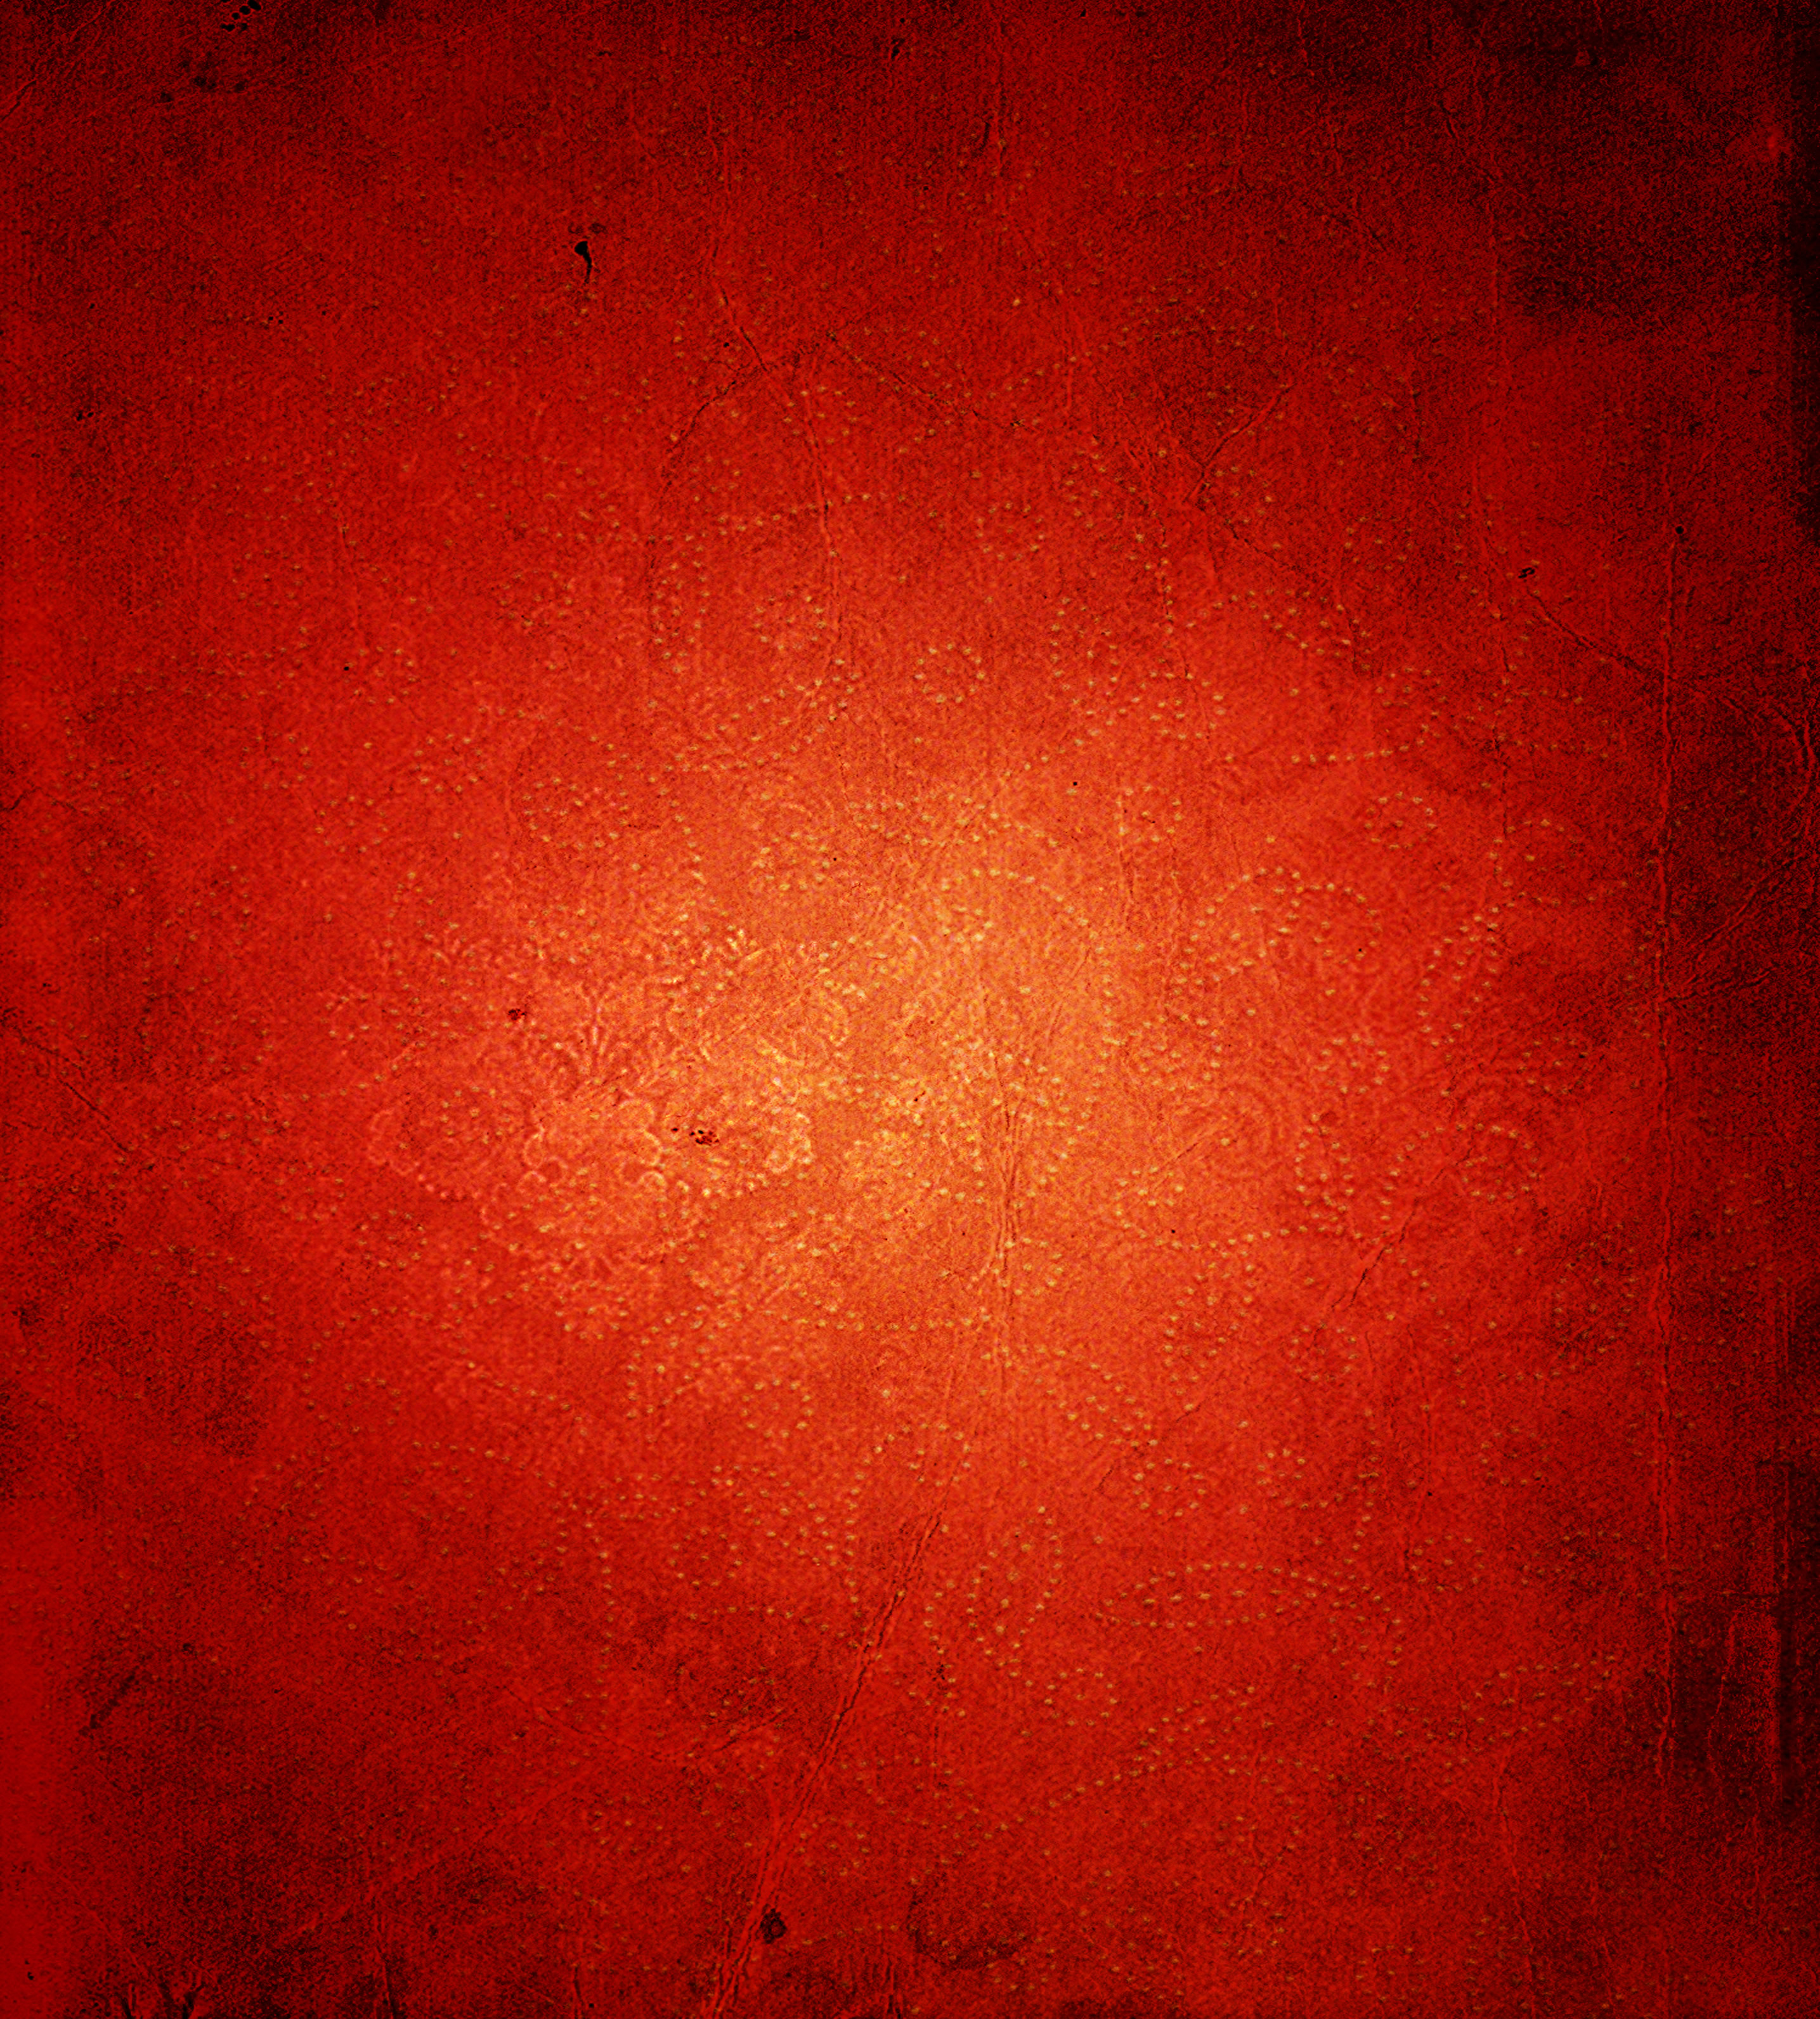 Red Background Images Wallpapersafari